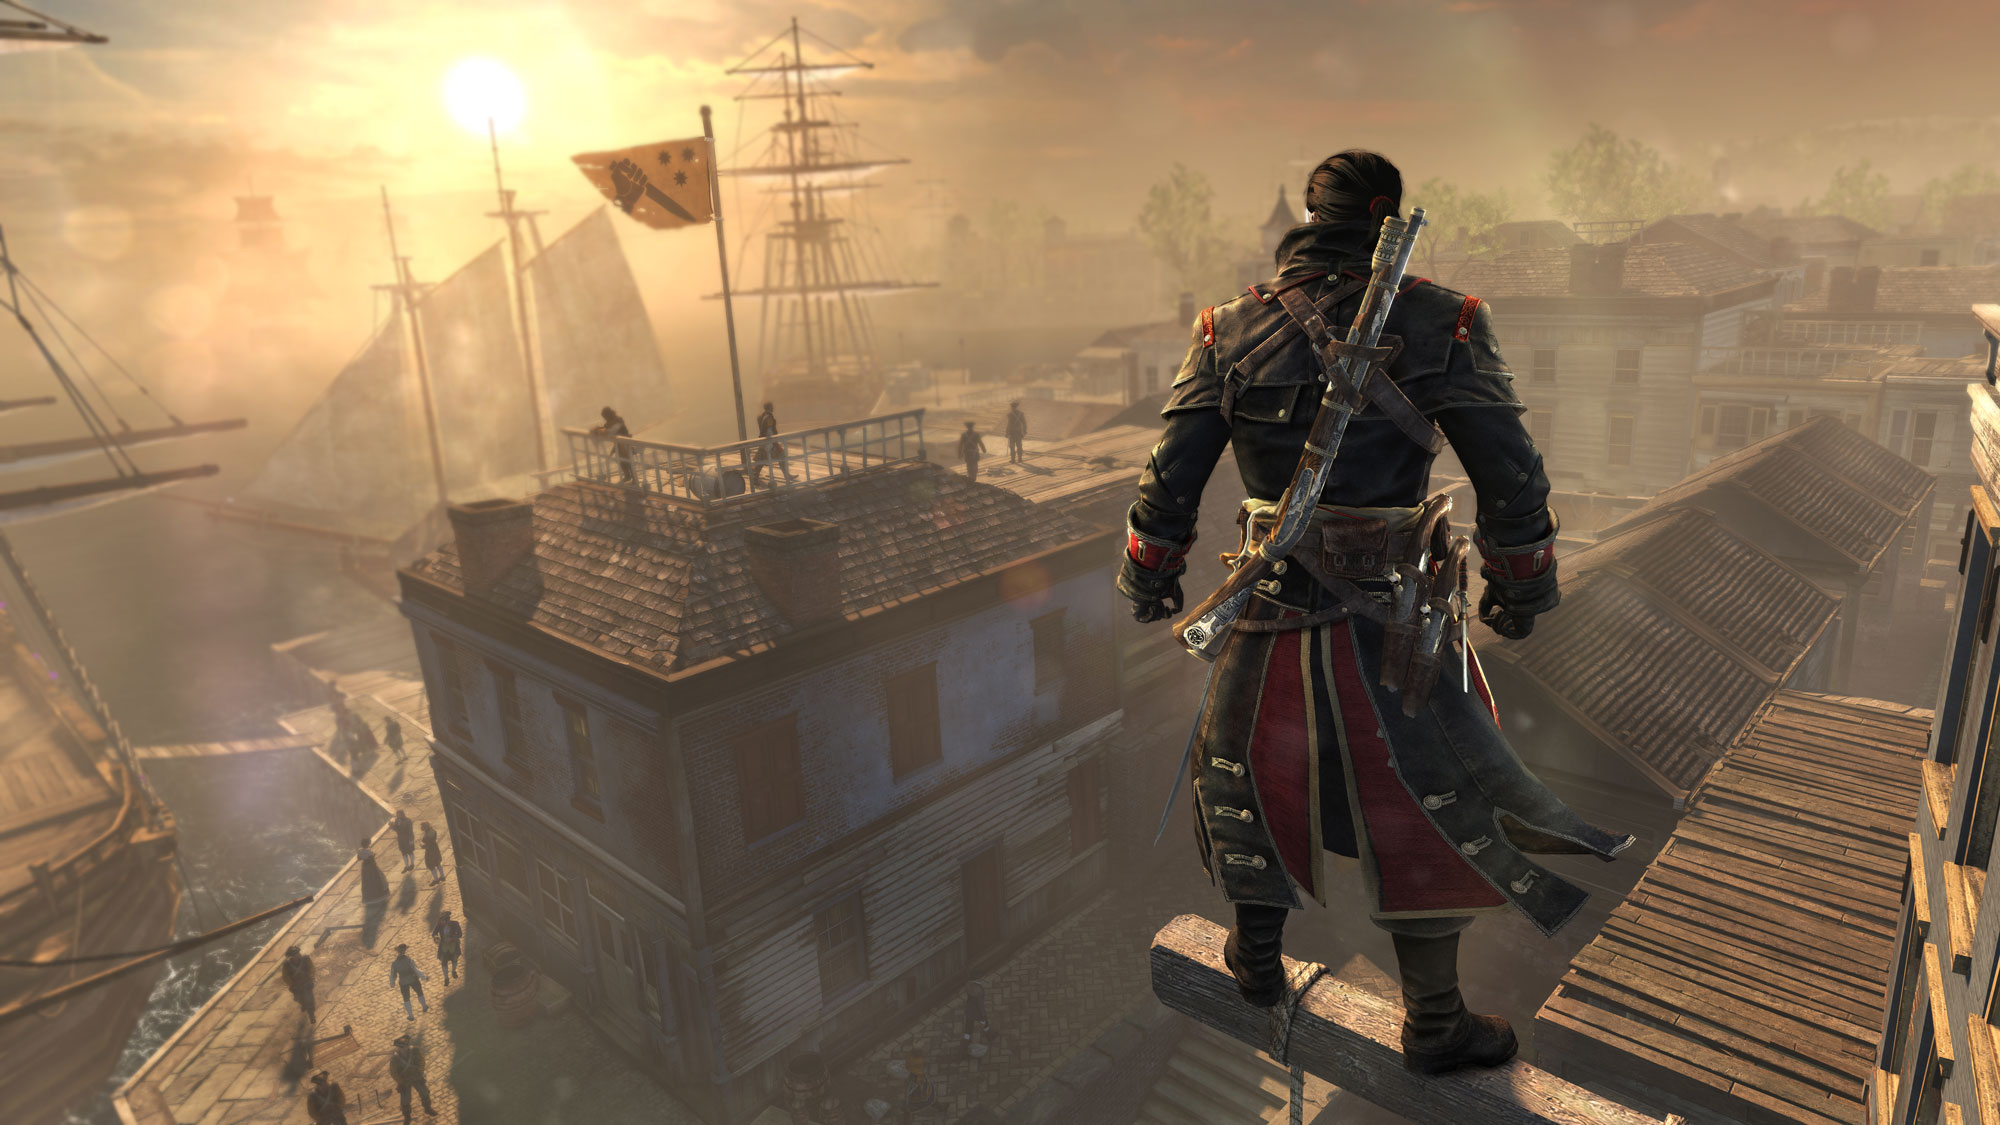 Nuevo gameplay trailer de Assassin's Creed Rogue [Video]